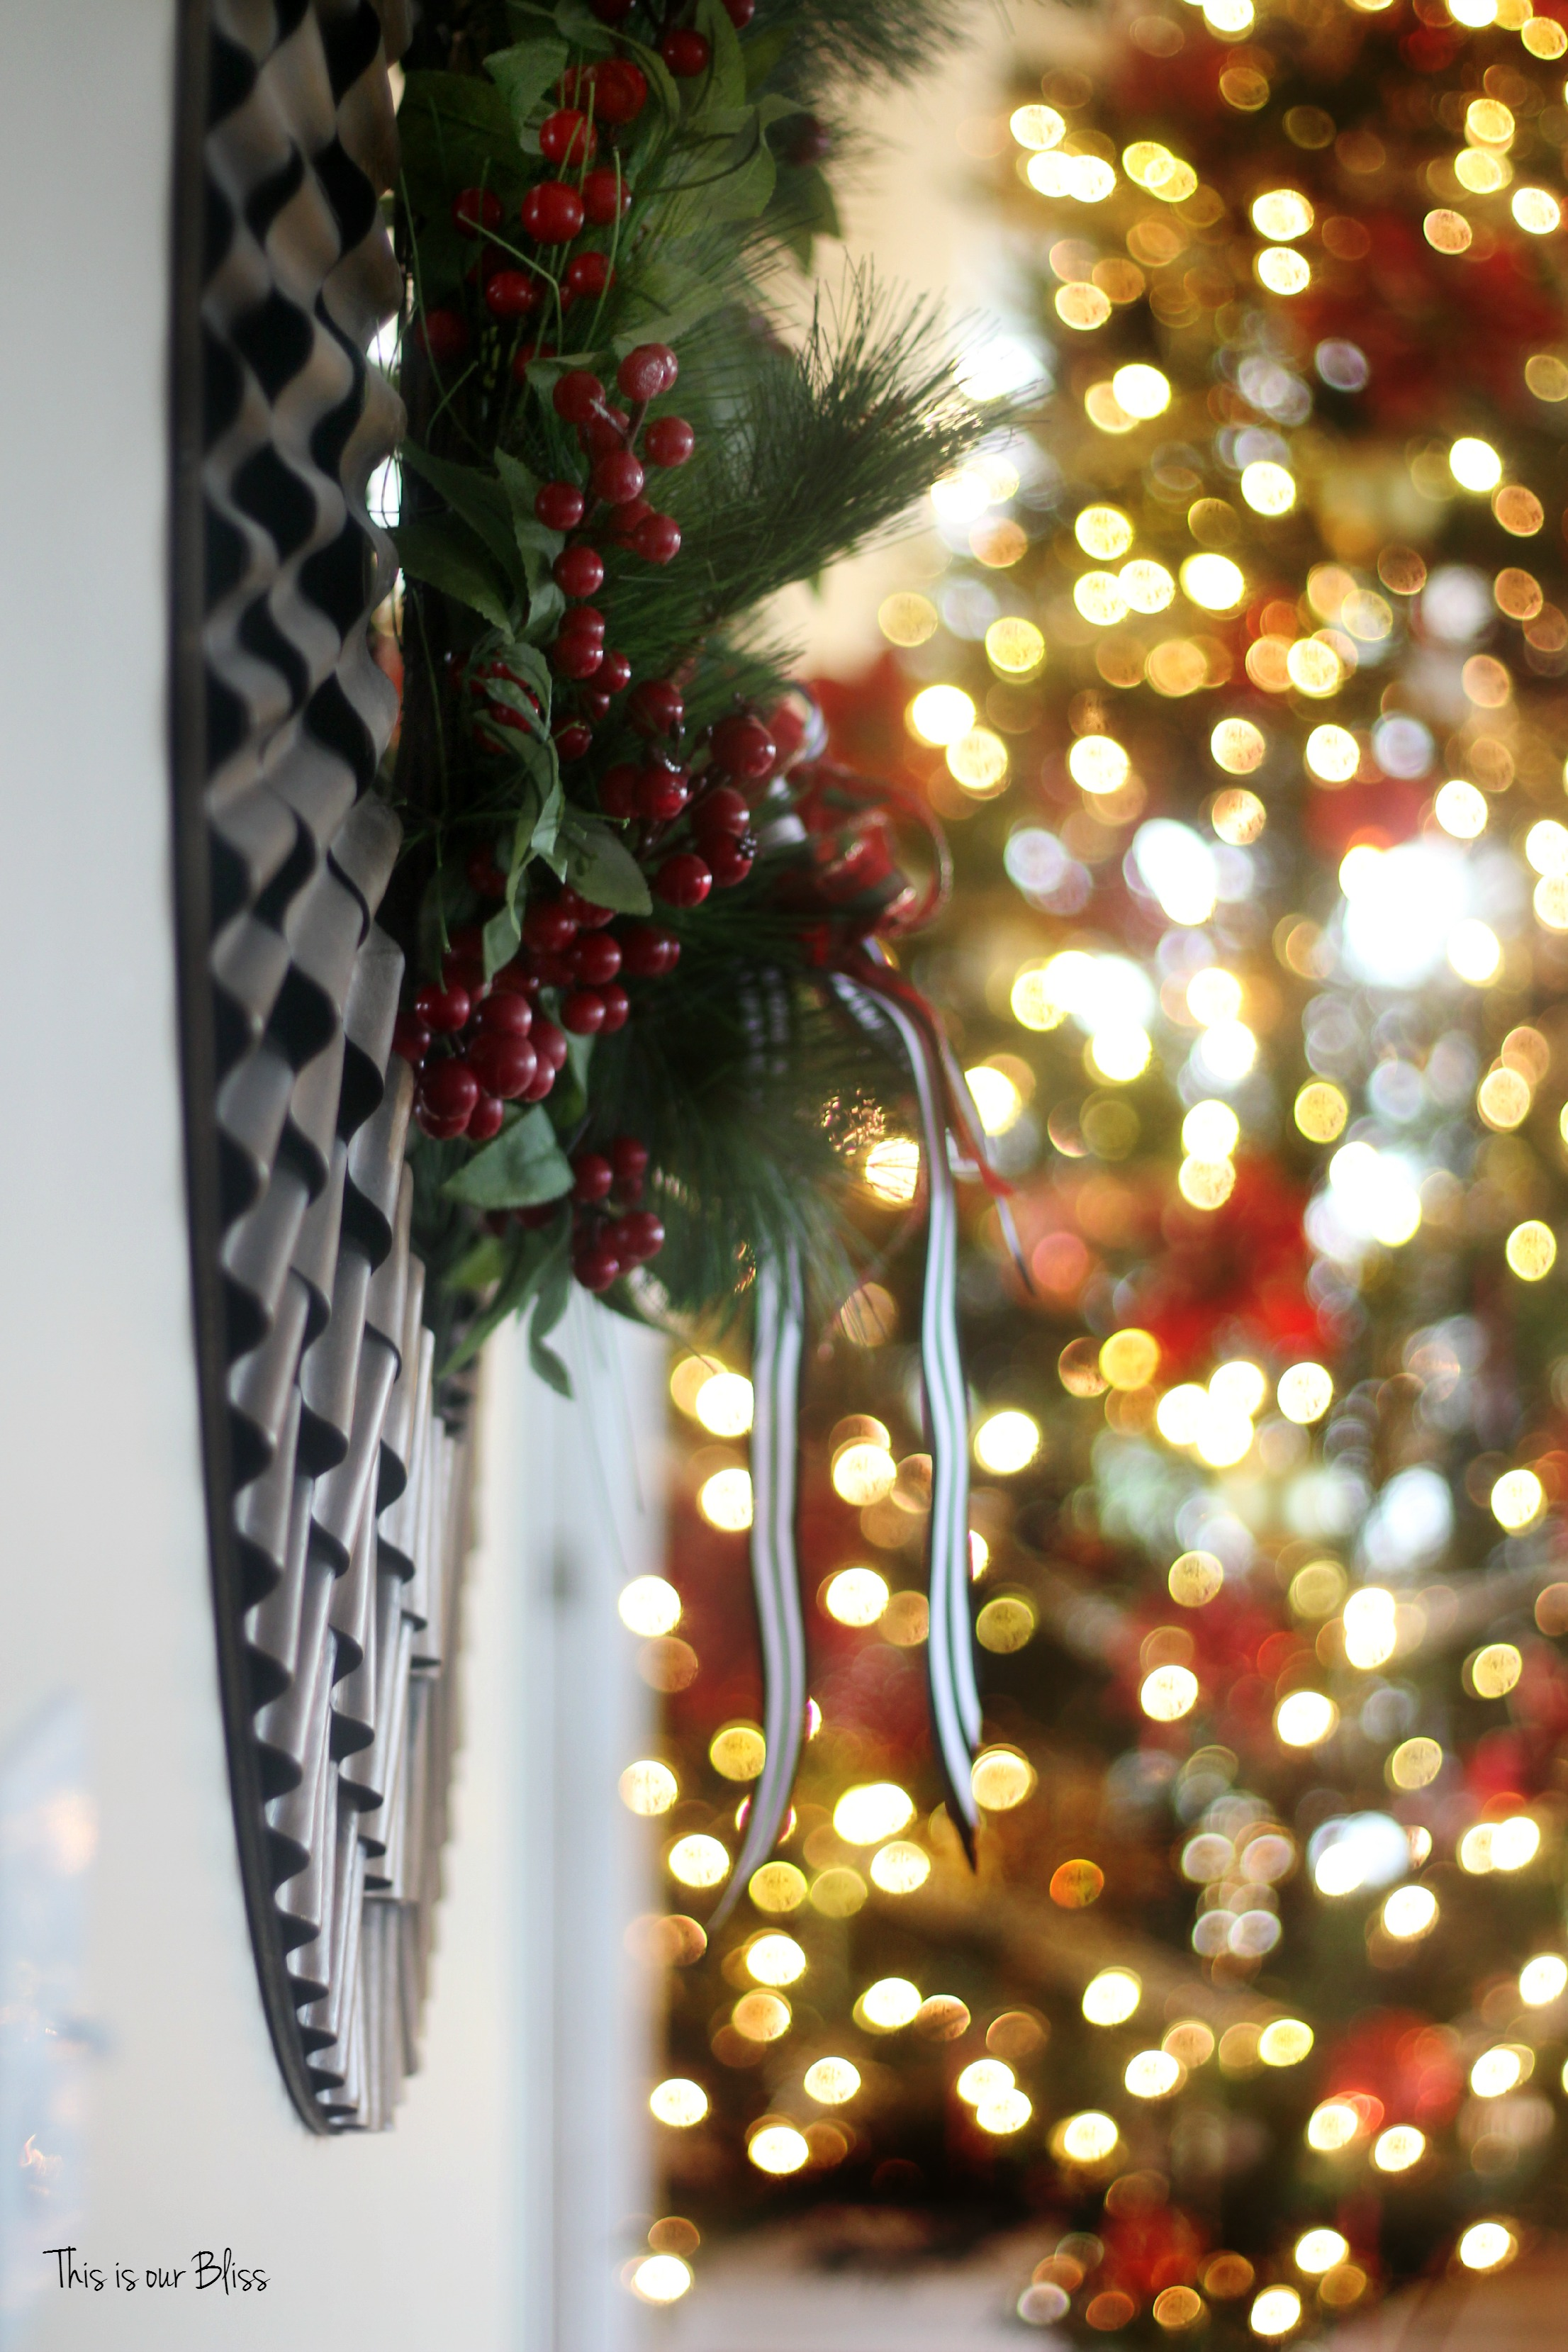 ba298e7d5c80db The goldish/bronze ruffle mirror got some wreath treatment and a few added  plaid & striped ribbons made it feel right at home.